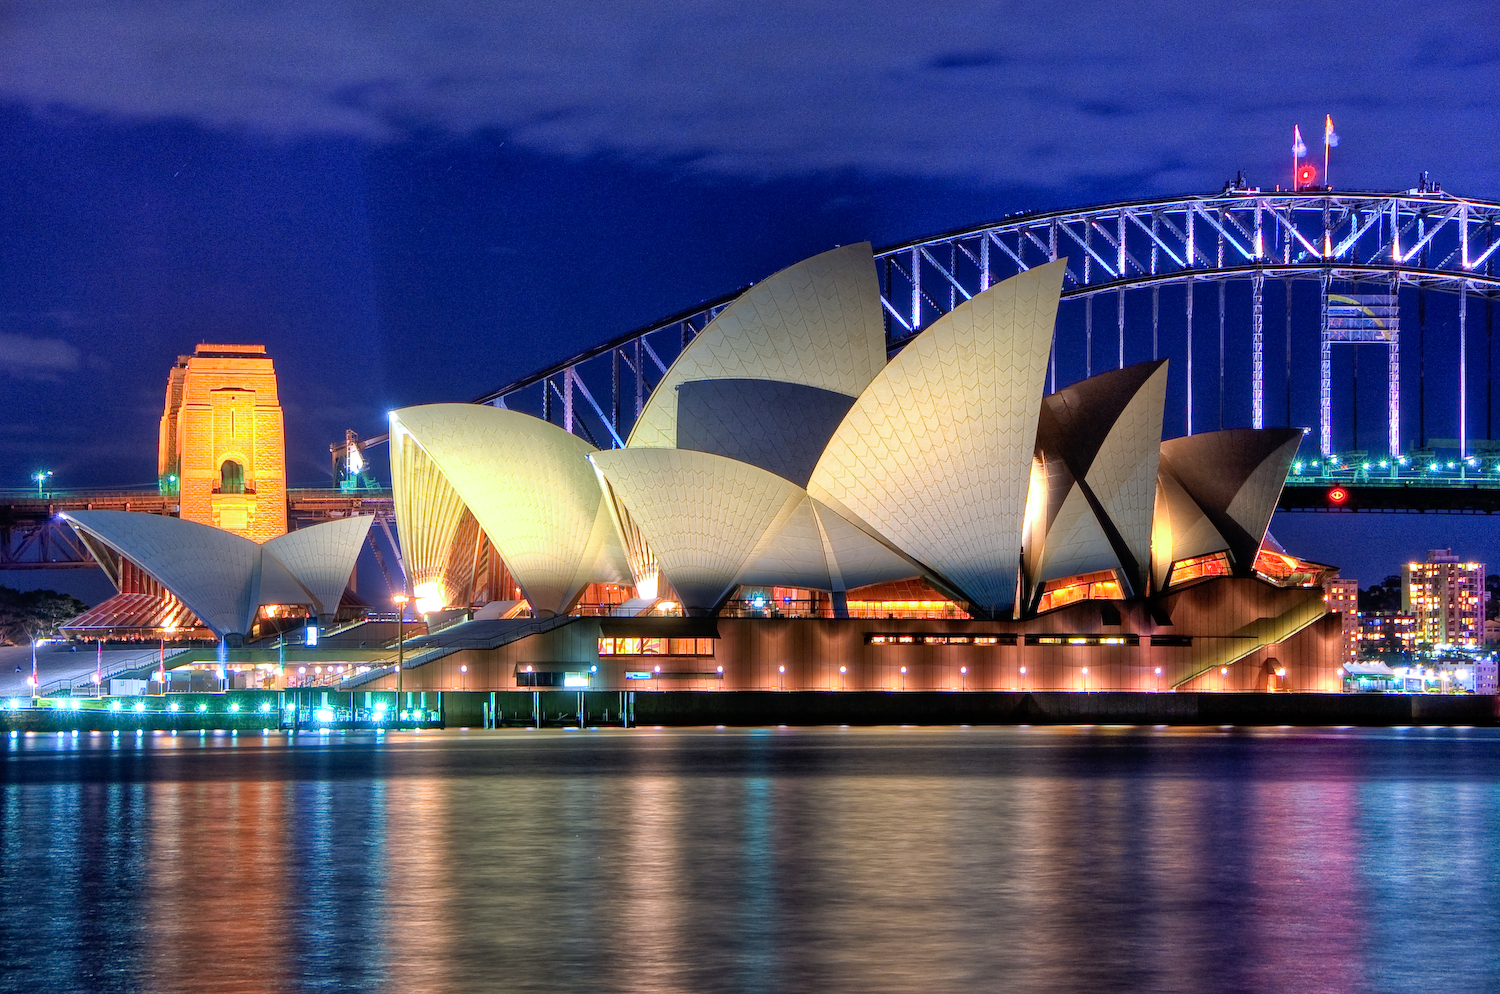 Inspiring architecture - The Sydney Opera House